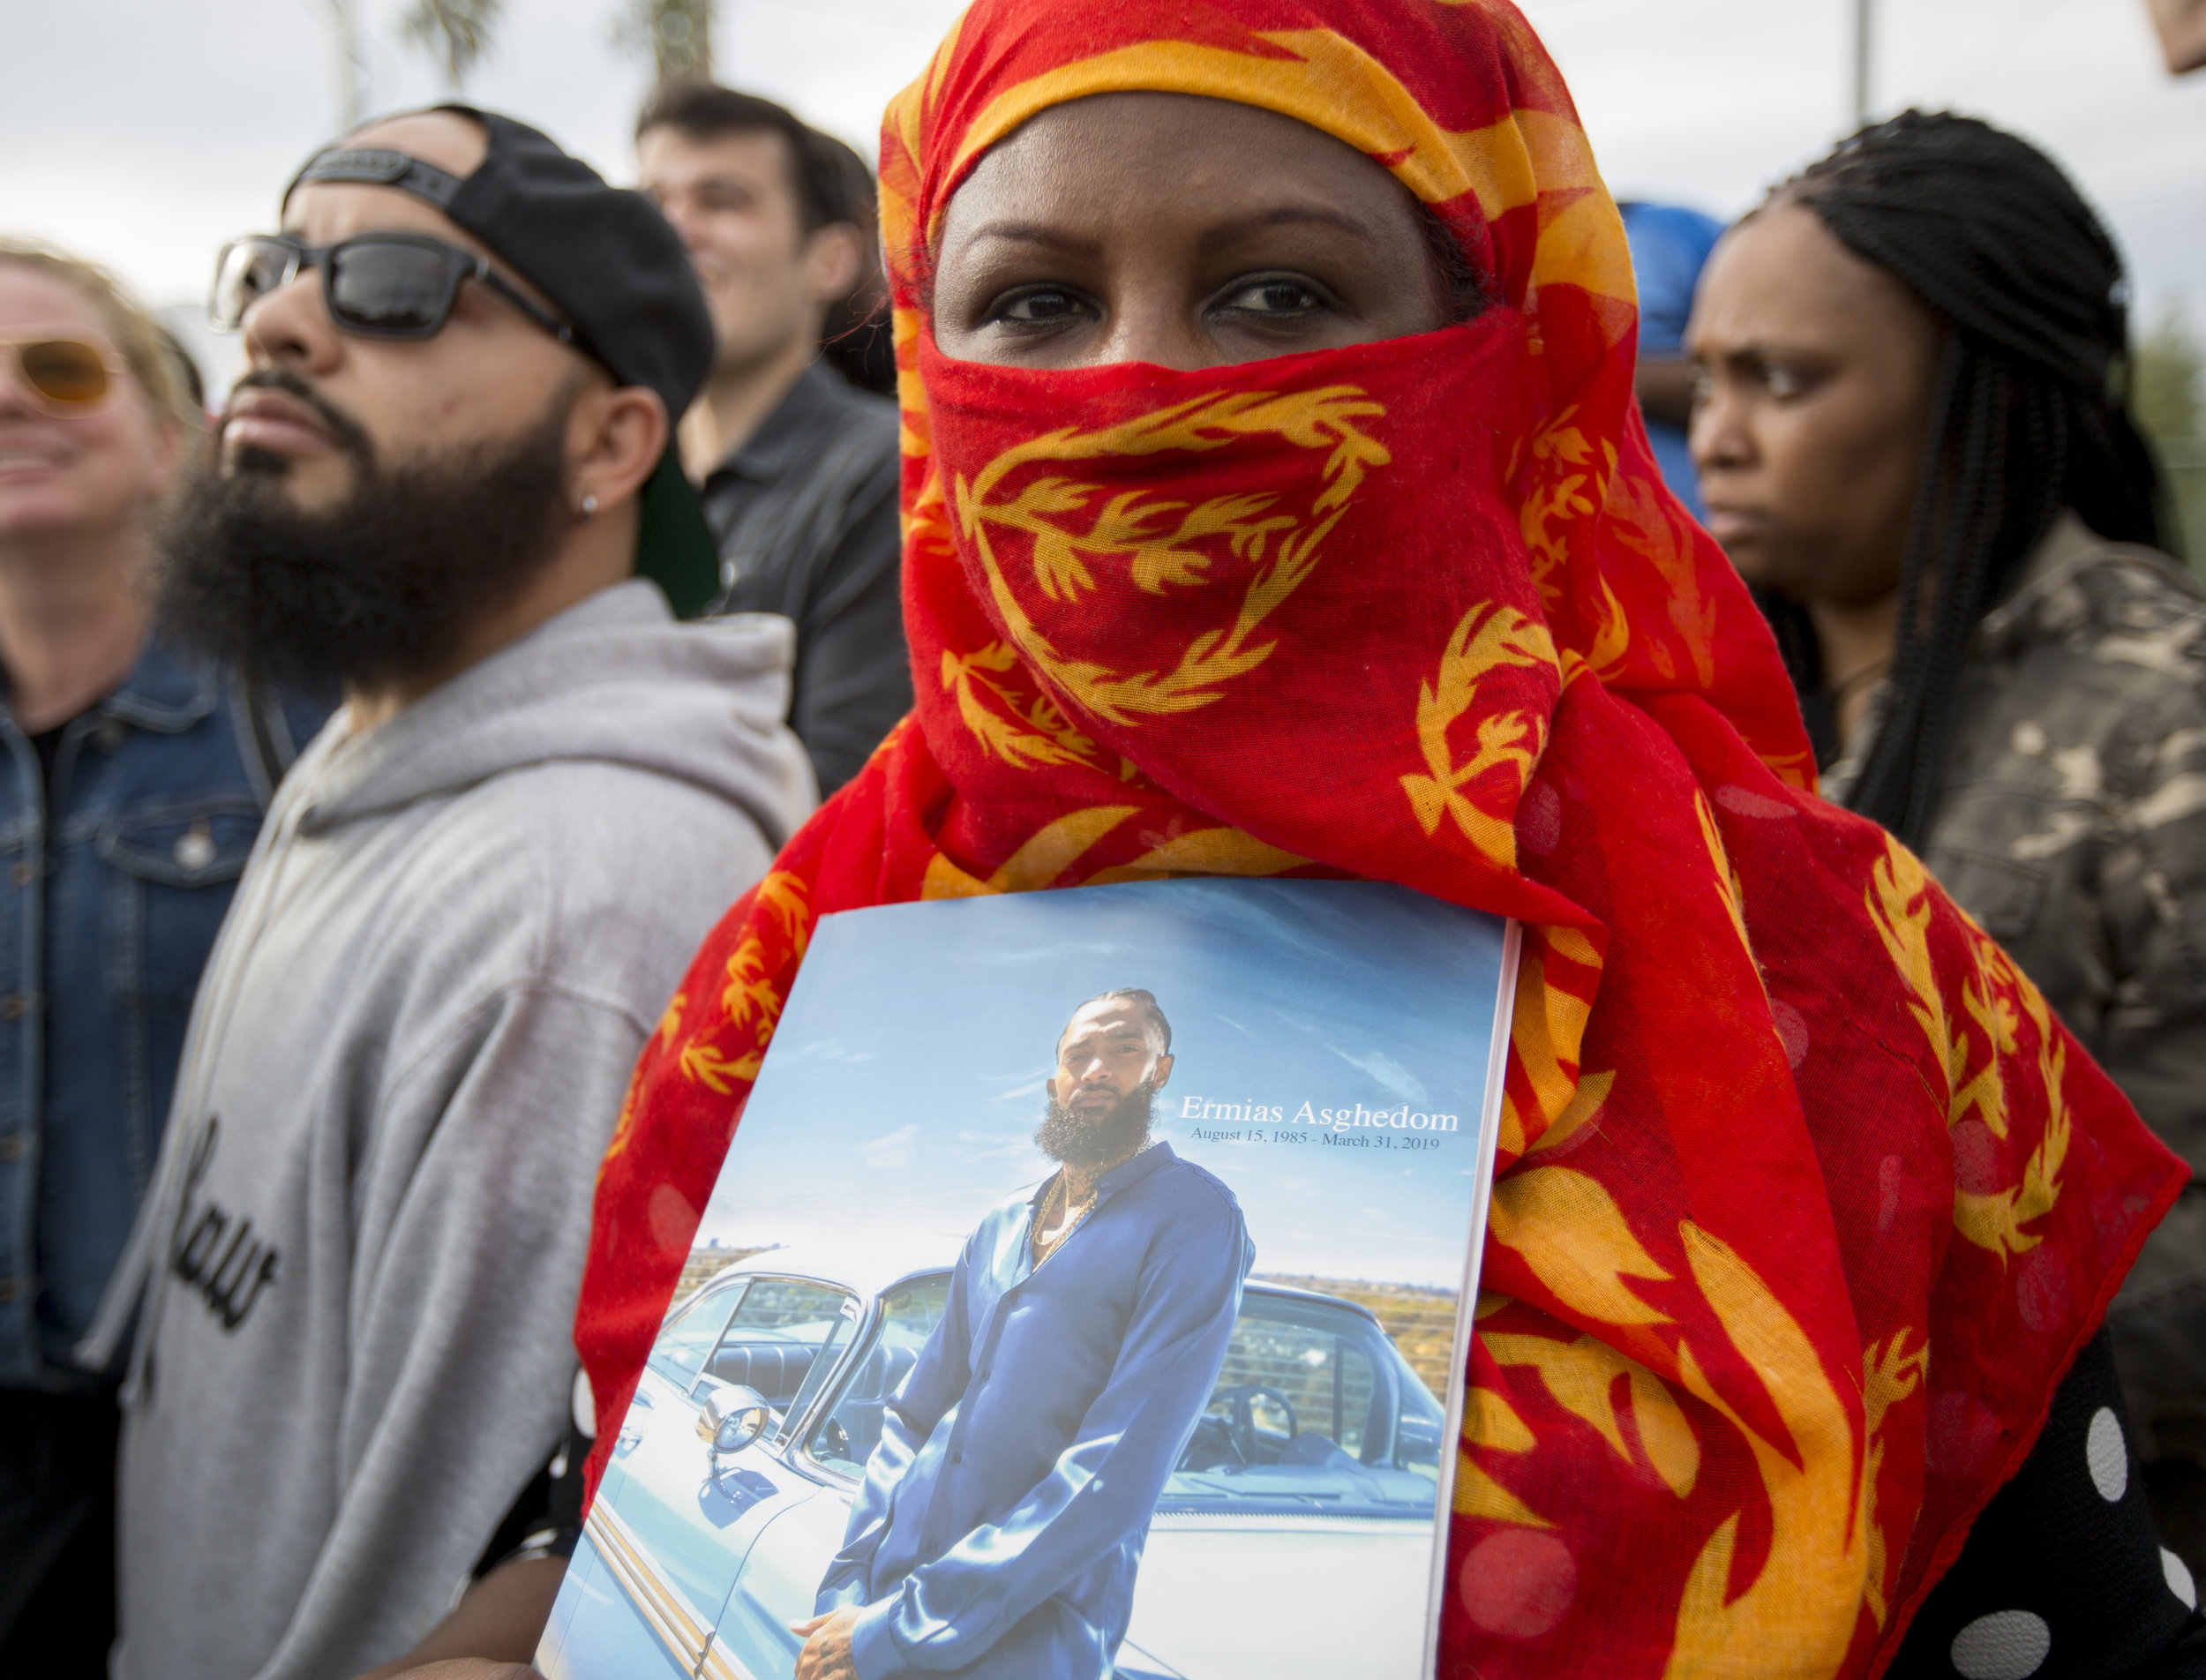 """Hermon Fessahaye holds her program from the Celebration of Life memorial service as she waits in the crowd for the procession to drive along Slauson Avenue so she can say goodbye to fellow Eritrean, Nipsey Hussle, in Los Angeles, California on April 11, 2019. She feels a particular connection to Nipsey Hussle's story because she said her brother, Sador Fessahaye also known as """"Sandman Nugus"""" , who was a friend of Nipsey's and fellow rapper, was also tragically killed in the same way. She feels almost as if she is reliving the tragedy in response she felt it was important to come out and show support to Nipsey's family. Hermon Fessahaye, who fought in the civil war back home in Eritrea, wants to see the gangs stop killing each other because she has seen war and how it destroys lives. She said, """"Stop destroying family. I've seen too many deaths in the street. It's a cemetery."""" (Jose Lopez)"""